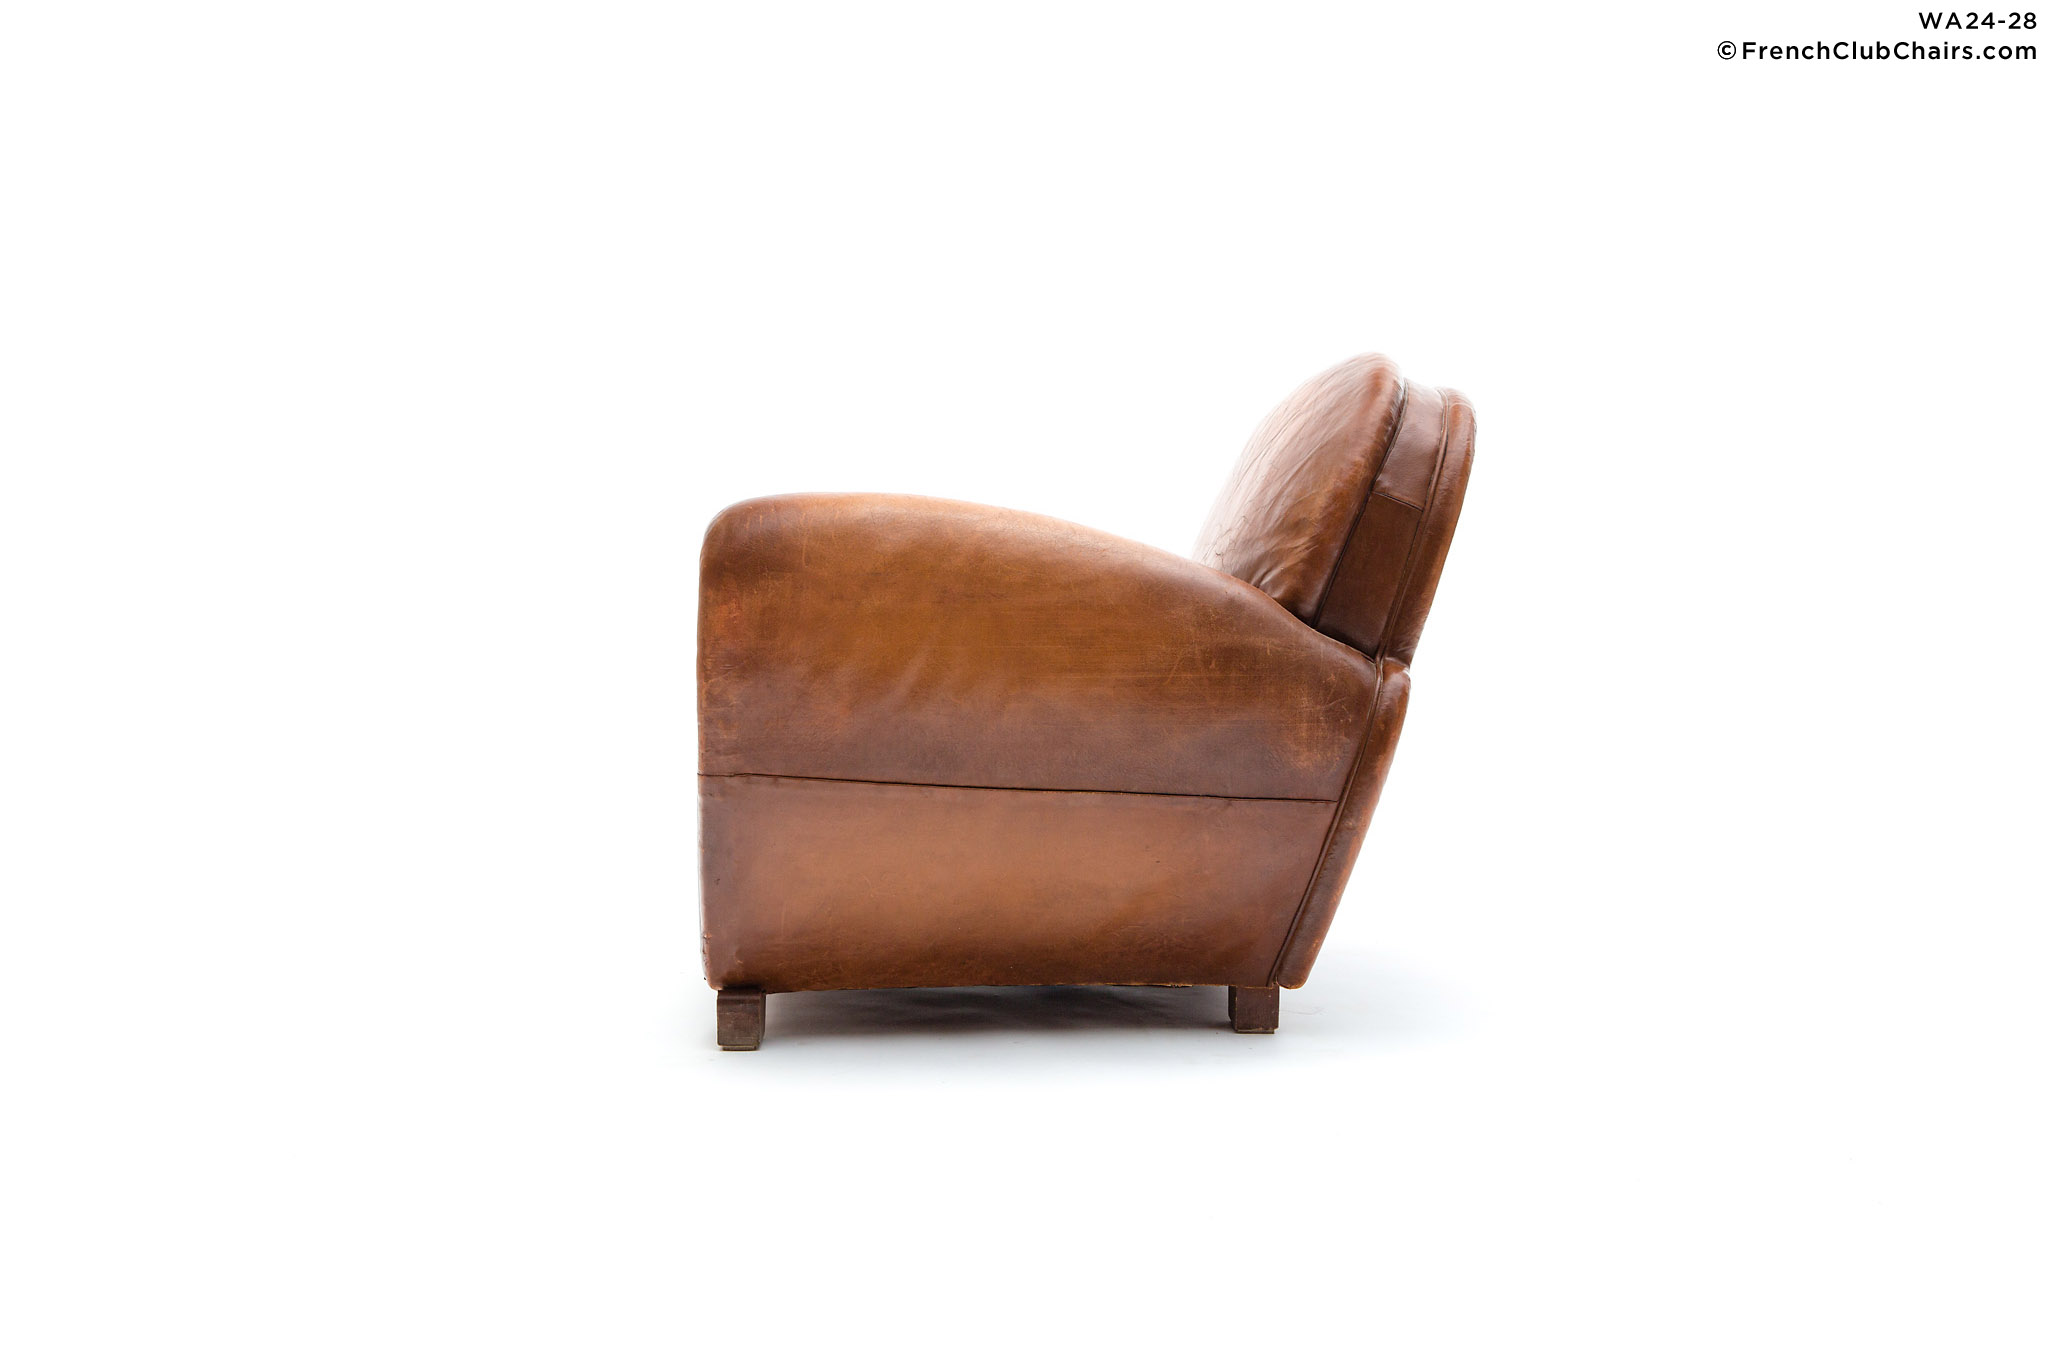 WA24-28_SILVIECINEMASOLO_W_4LT-v01-williams-antiks-leather-french-club-chair-wa_fcccom_w